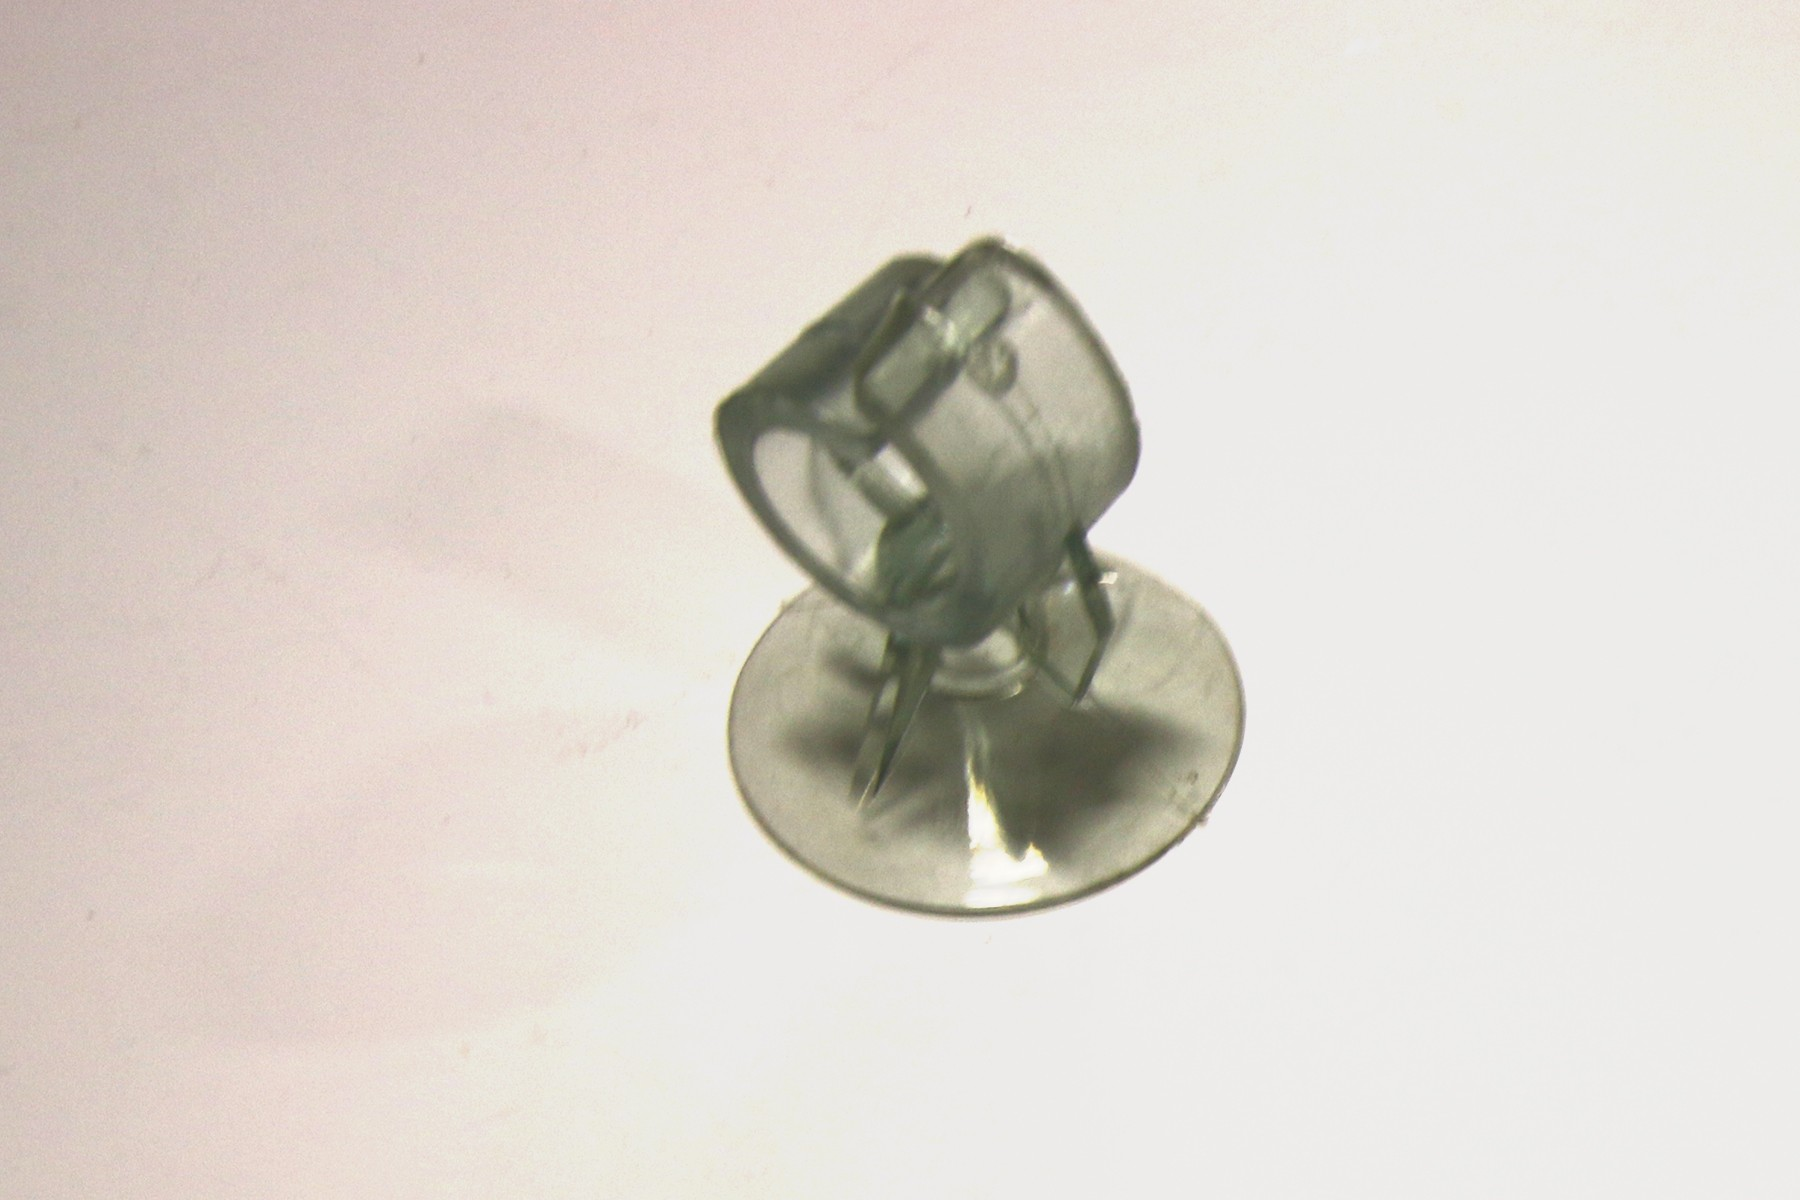 Suction Cup for Removing Dual Lock Pla